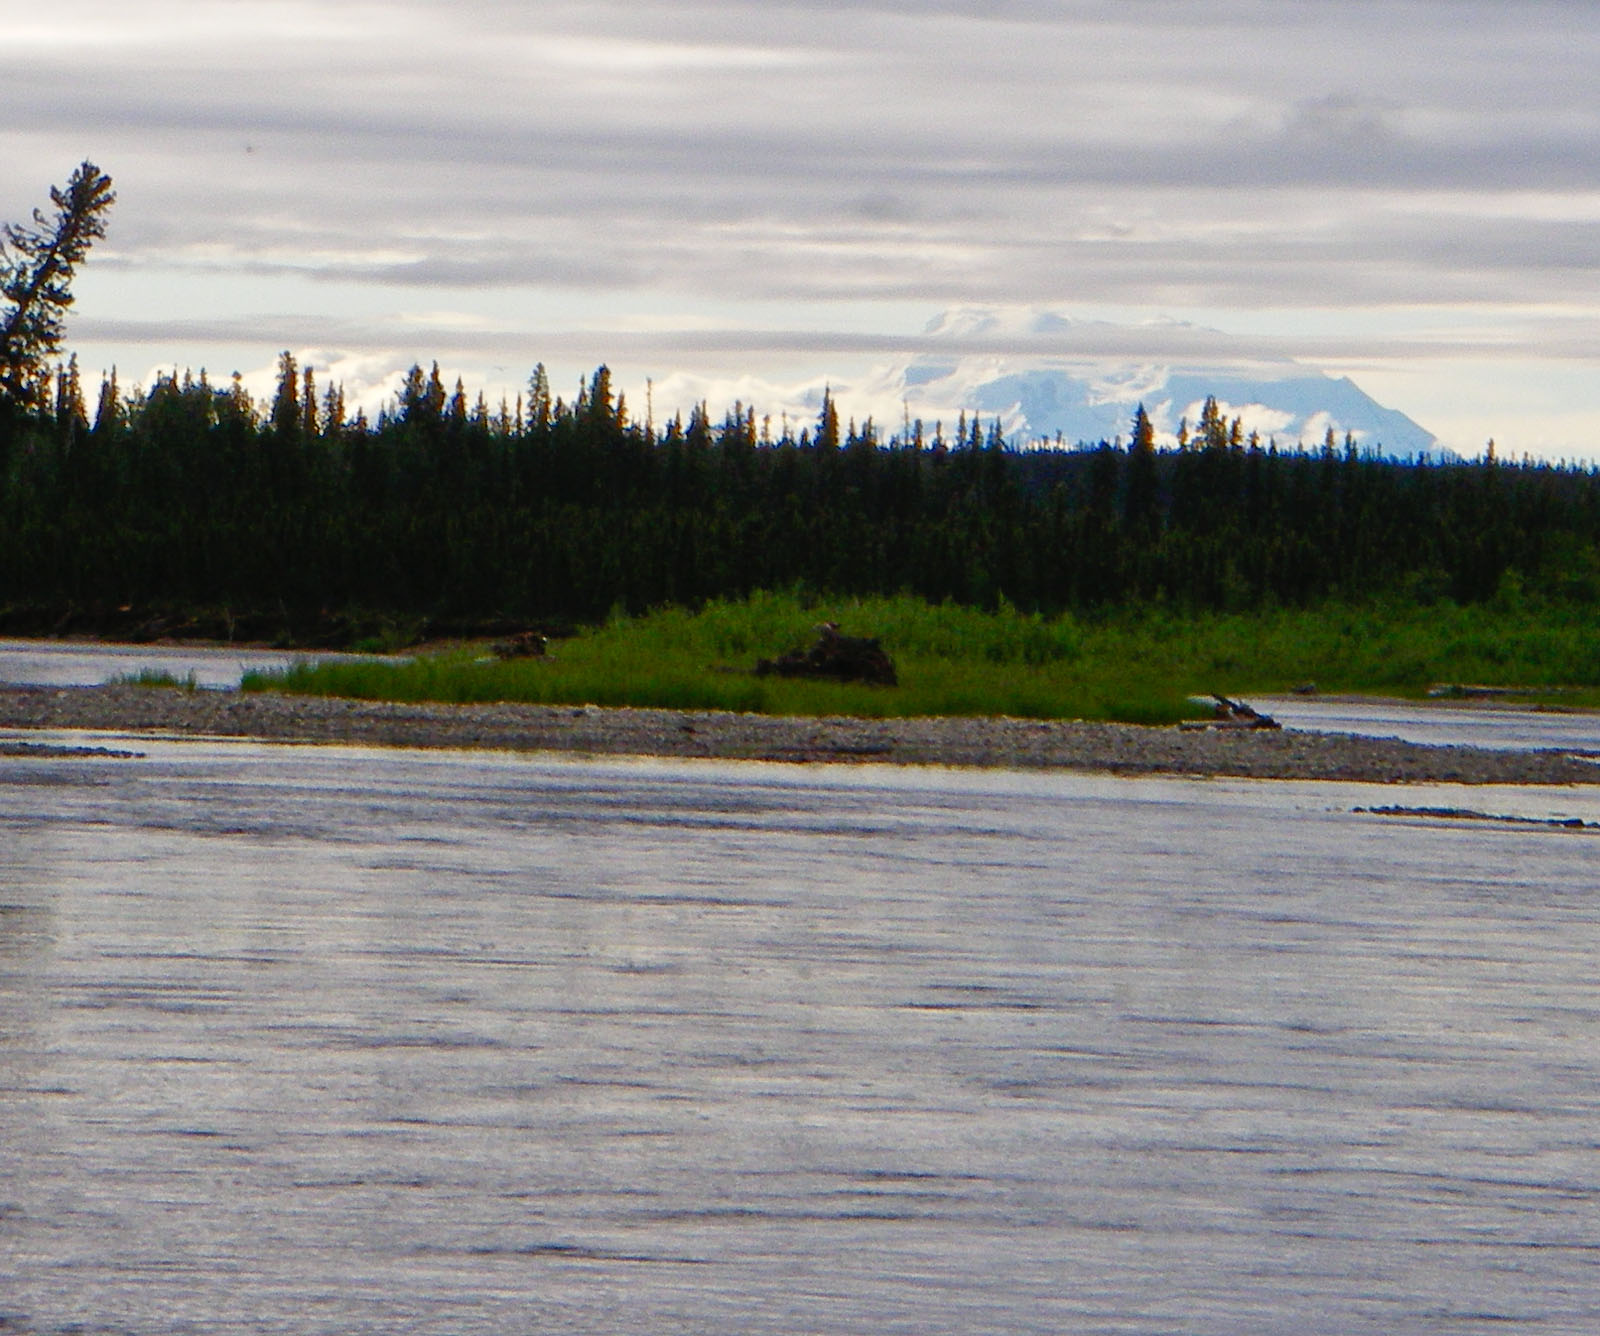 This float trip gave us a couple views of the distant peak of Mount Wrangell, an inactive volcano. From the Gulkana River in Alaska.